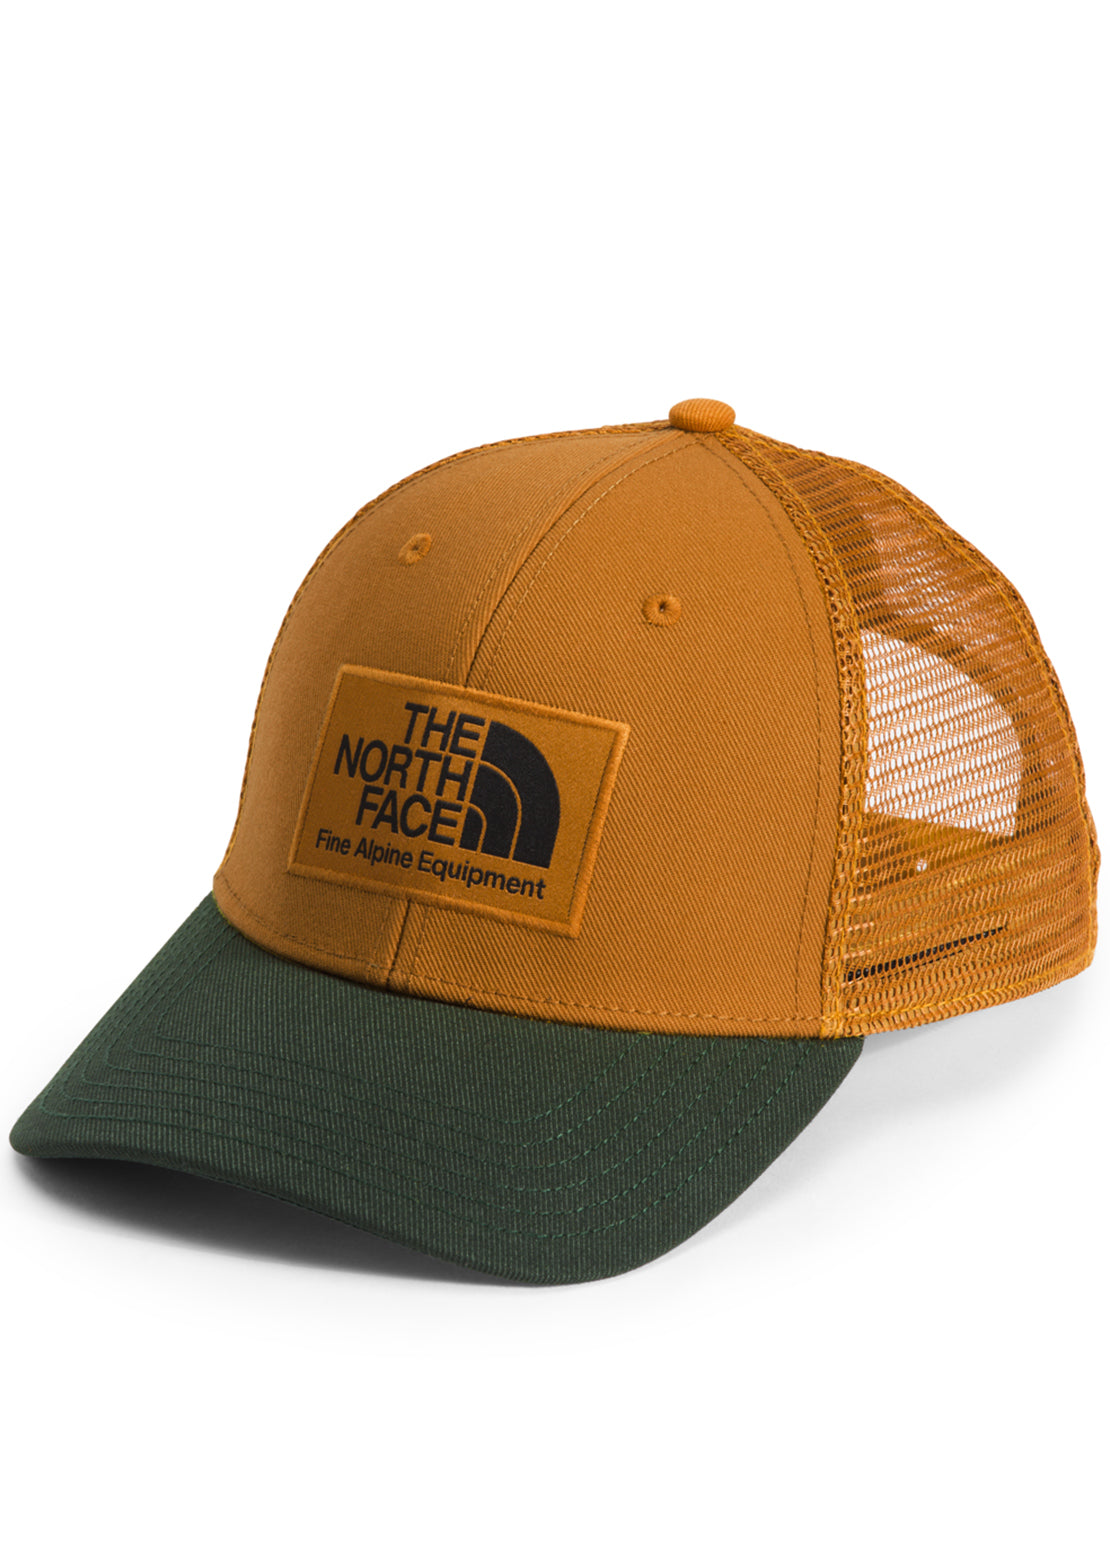 The North Face Deep Fit Mudder Trucker Cap Timber Tan/Canvas Green